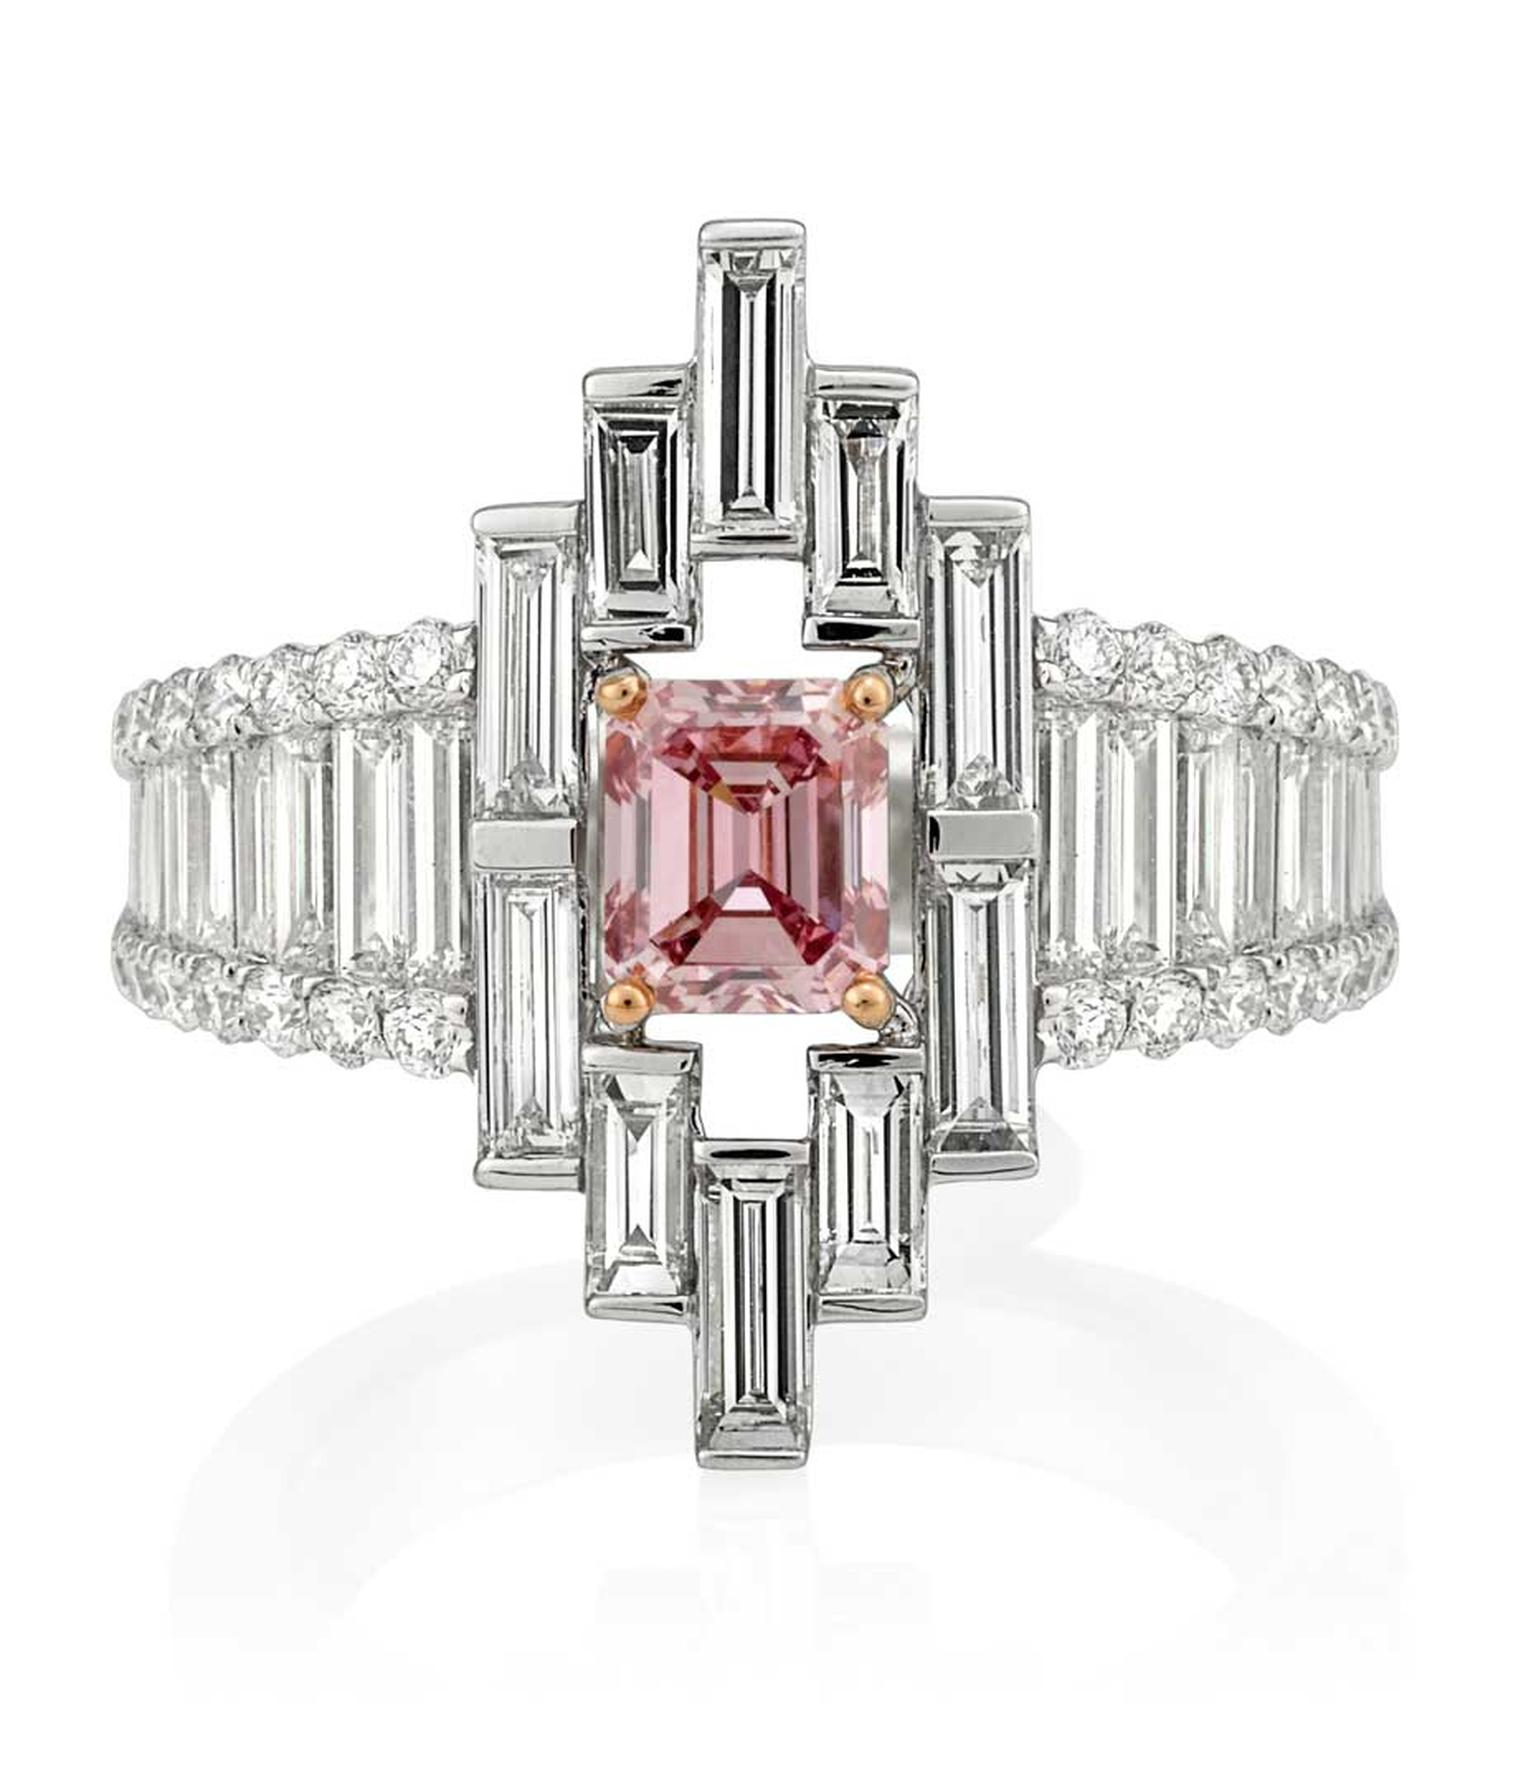 Mondial Pink Diamond Atelier Cathedral pink diamond ring in platinum featuring an emerald-cut 0.83ct natural Argyle pink diamond, available at www.mondial.com.au.